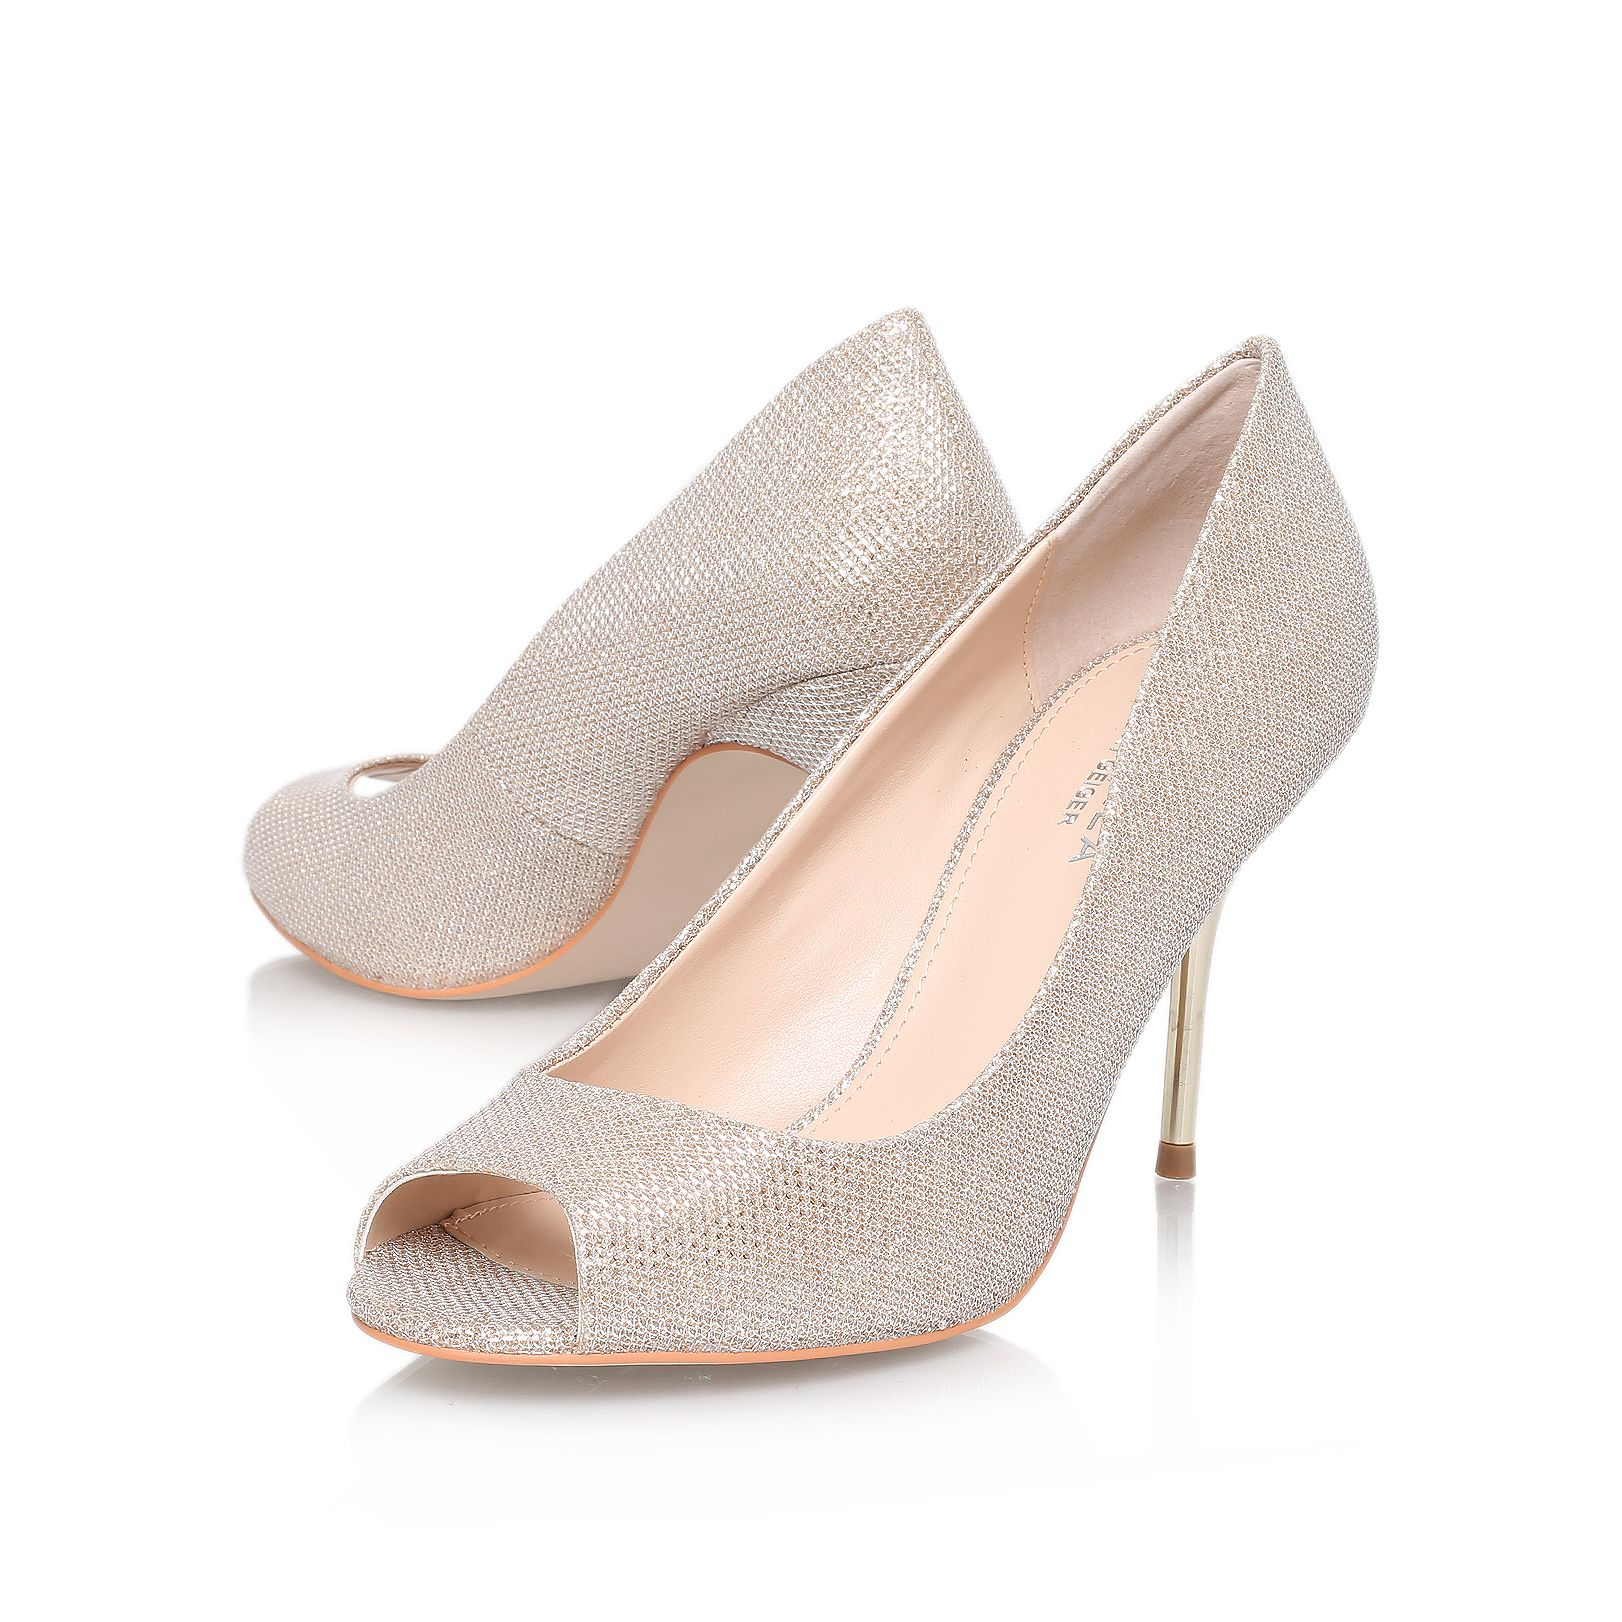 Geradine high heel court shoes